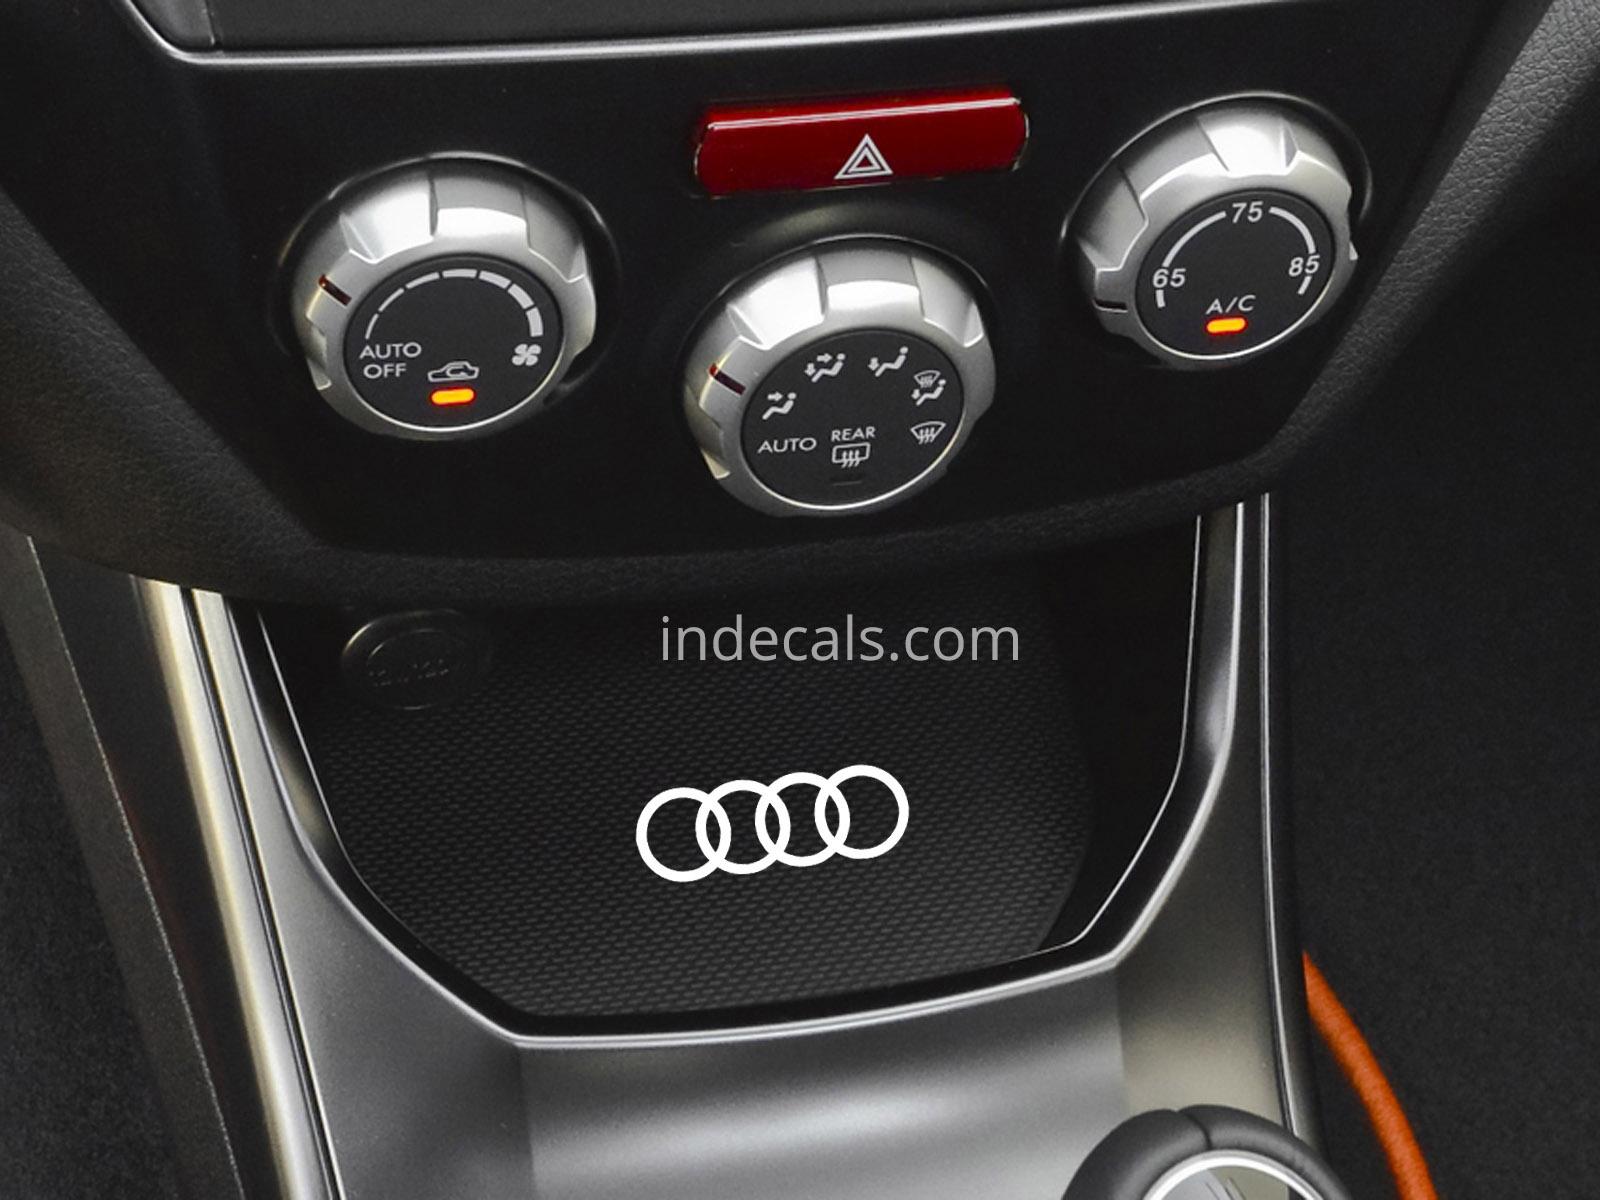 3 x Audi Rings Stickers for Ashtray - White